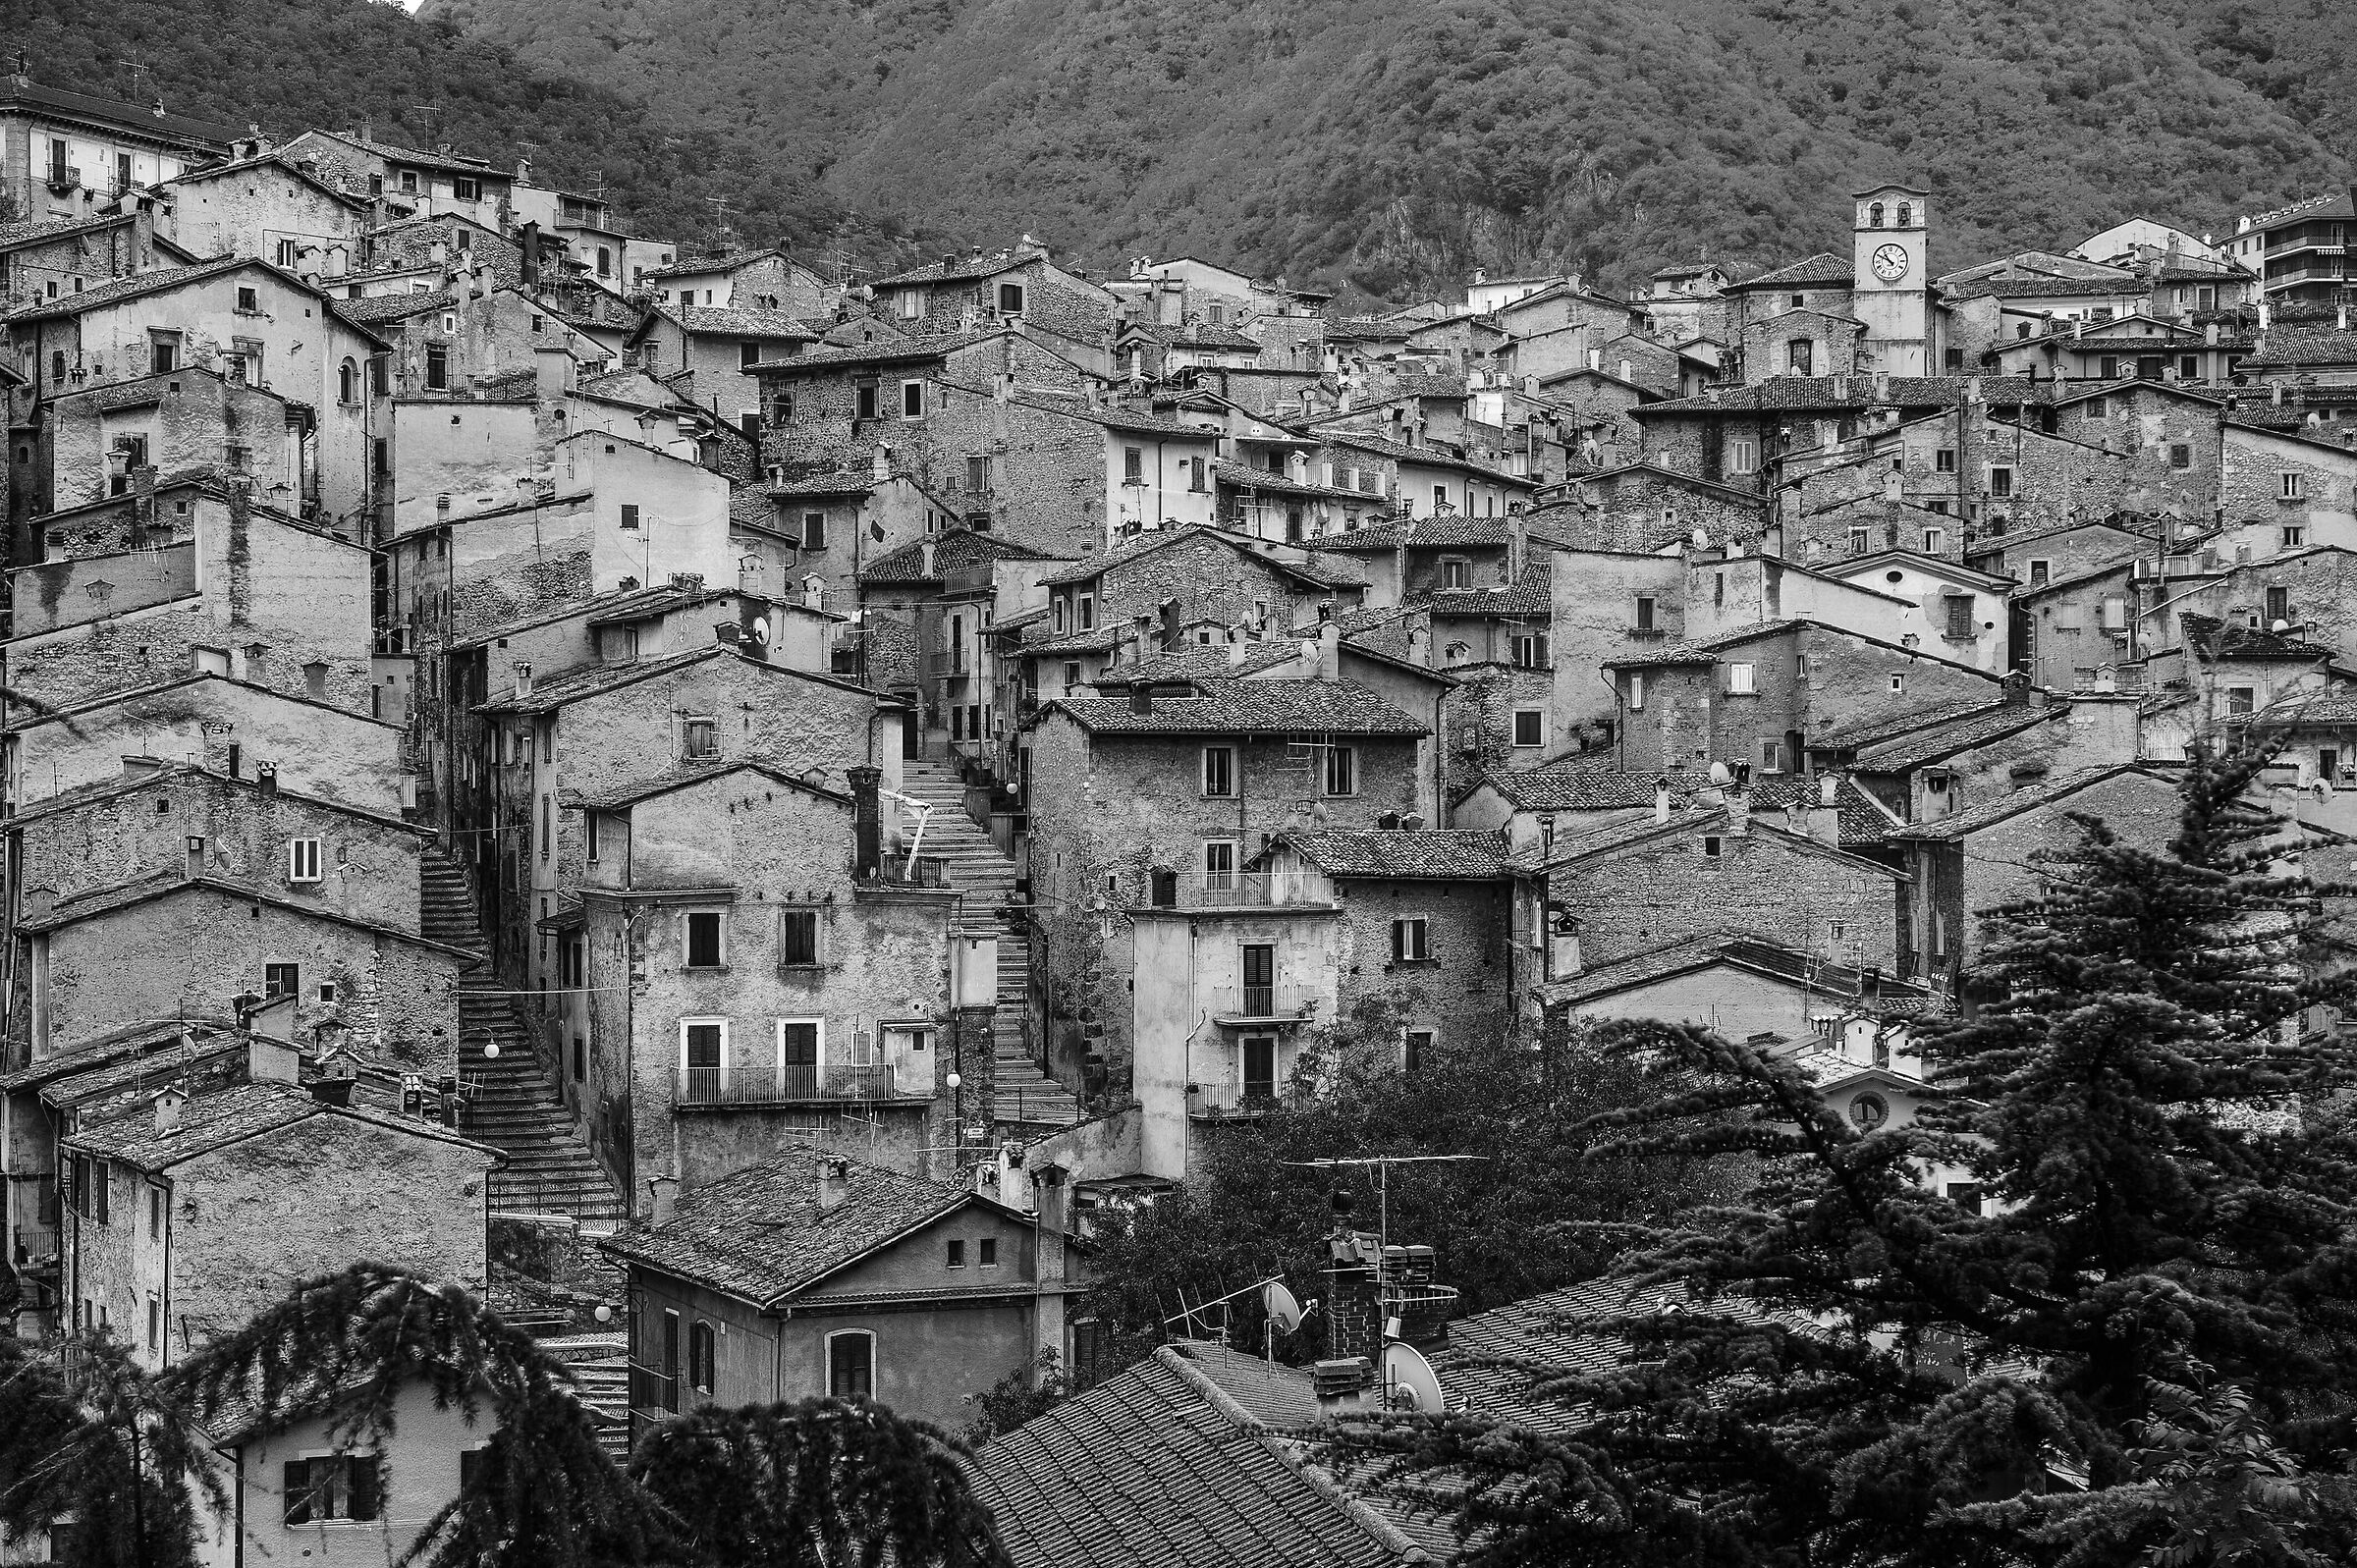 The Stone Houses of Scanno (Aq)...